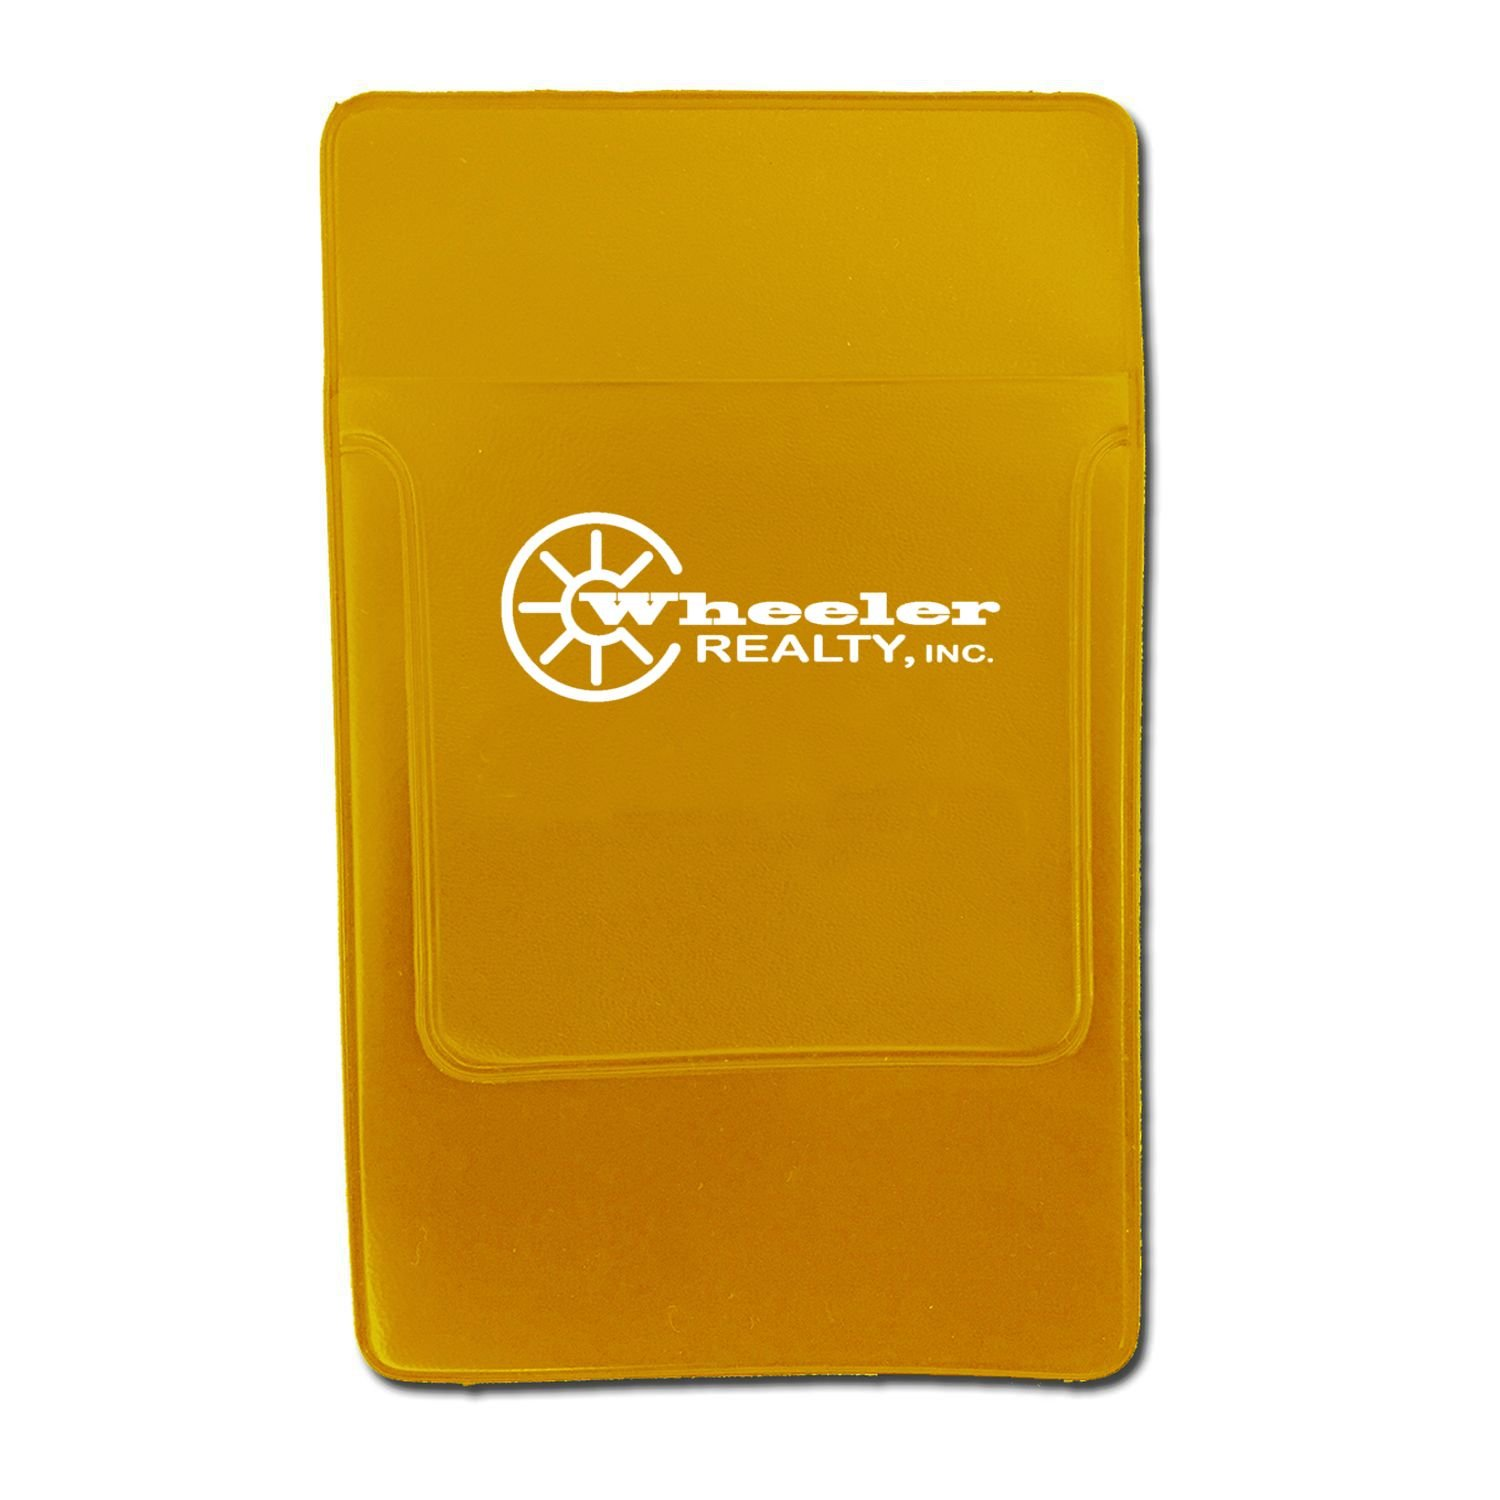 Promos With Imprint Personalized Pocket Protector 3 Flap -300 per Package- Bulk by Promos With Imprint (Image #1)